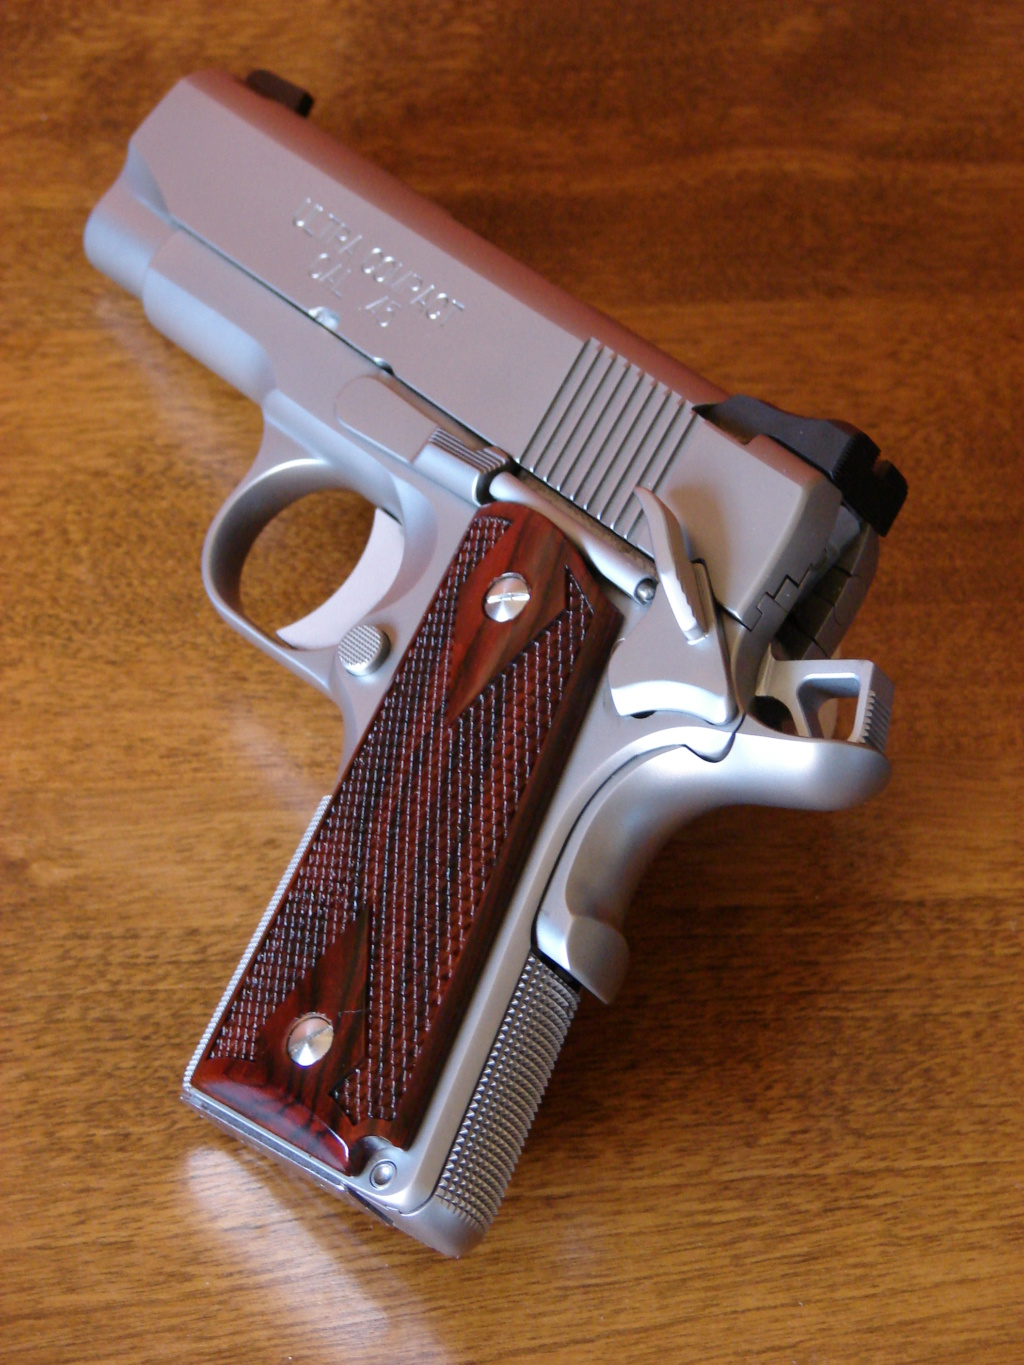 What make model and caliber pistol due you carry every day? Spring10